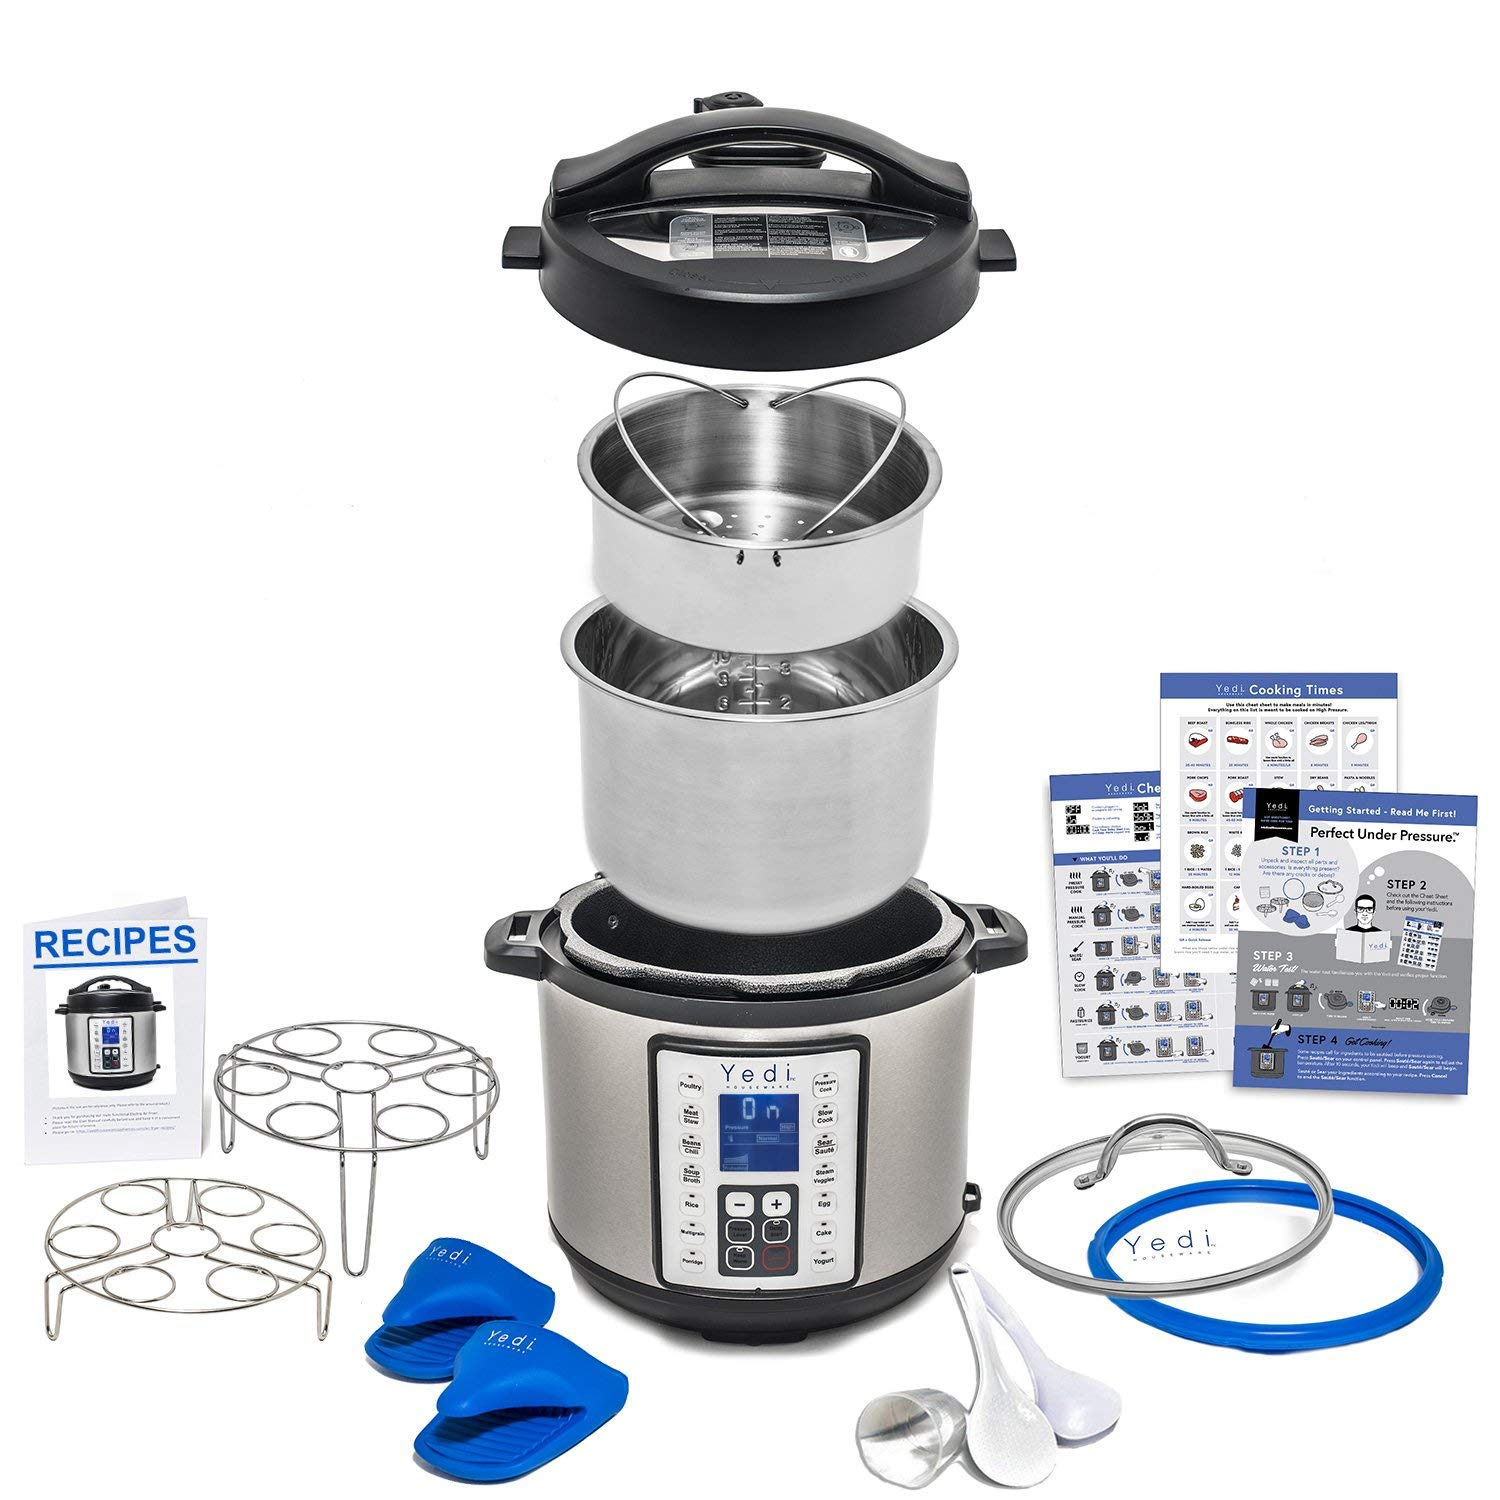 9-in-1 Instant Programmable Pressure Cooker 6 Quarts with Stainless Steel Pot, Steamer Basket, Glass Lid, Recipe Book. Pressure cook, slow cook, sauté, rice cooker, yogurt, steam by Yedi Houseware sauté Instant Pot